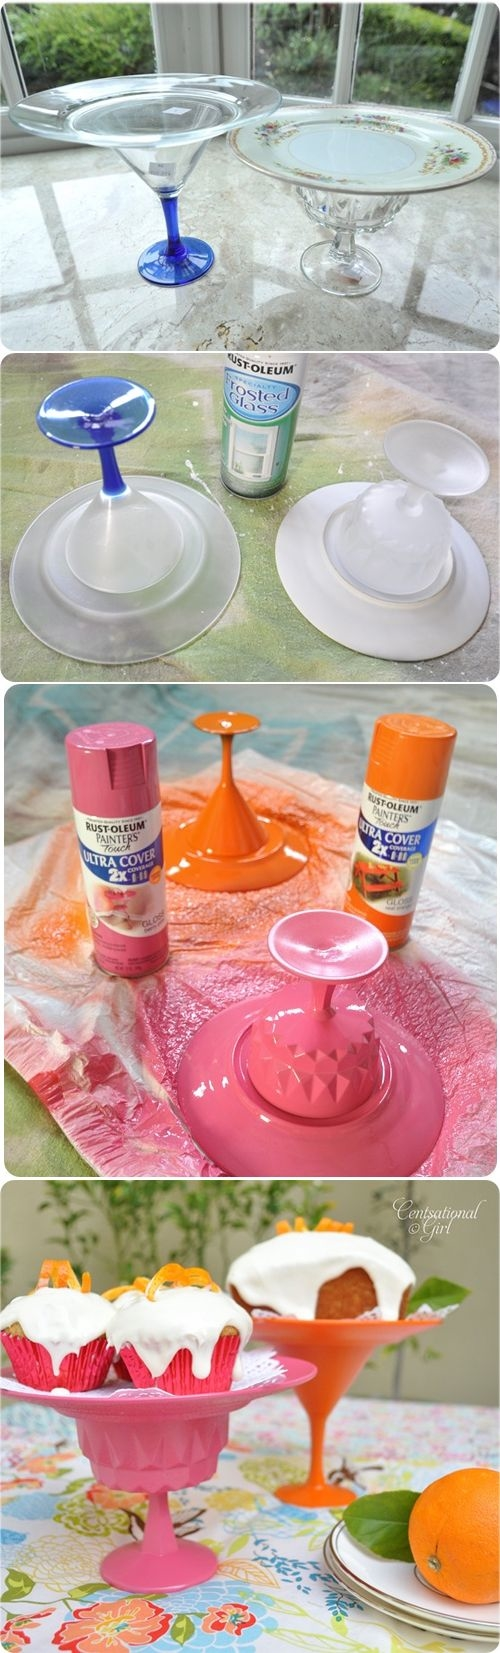 Diy cake stands pictures photos and images for facebook for Plate cake stand diy